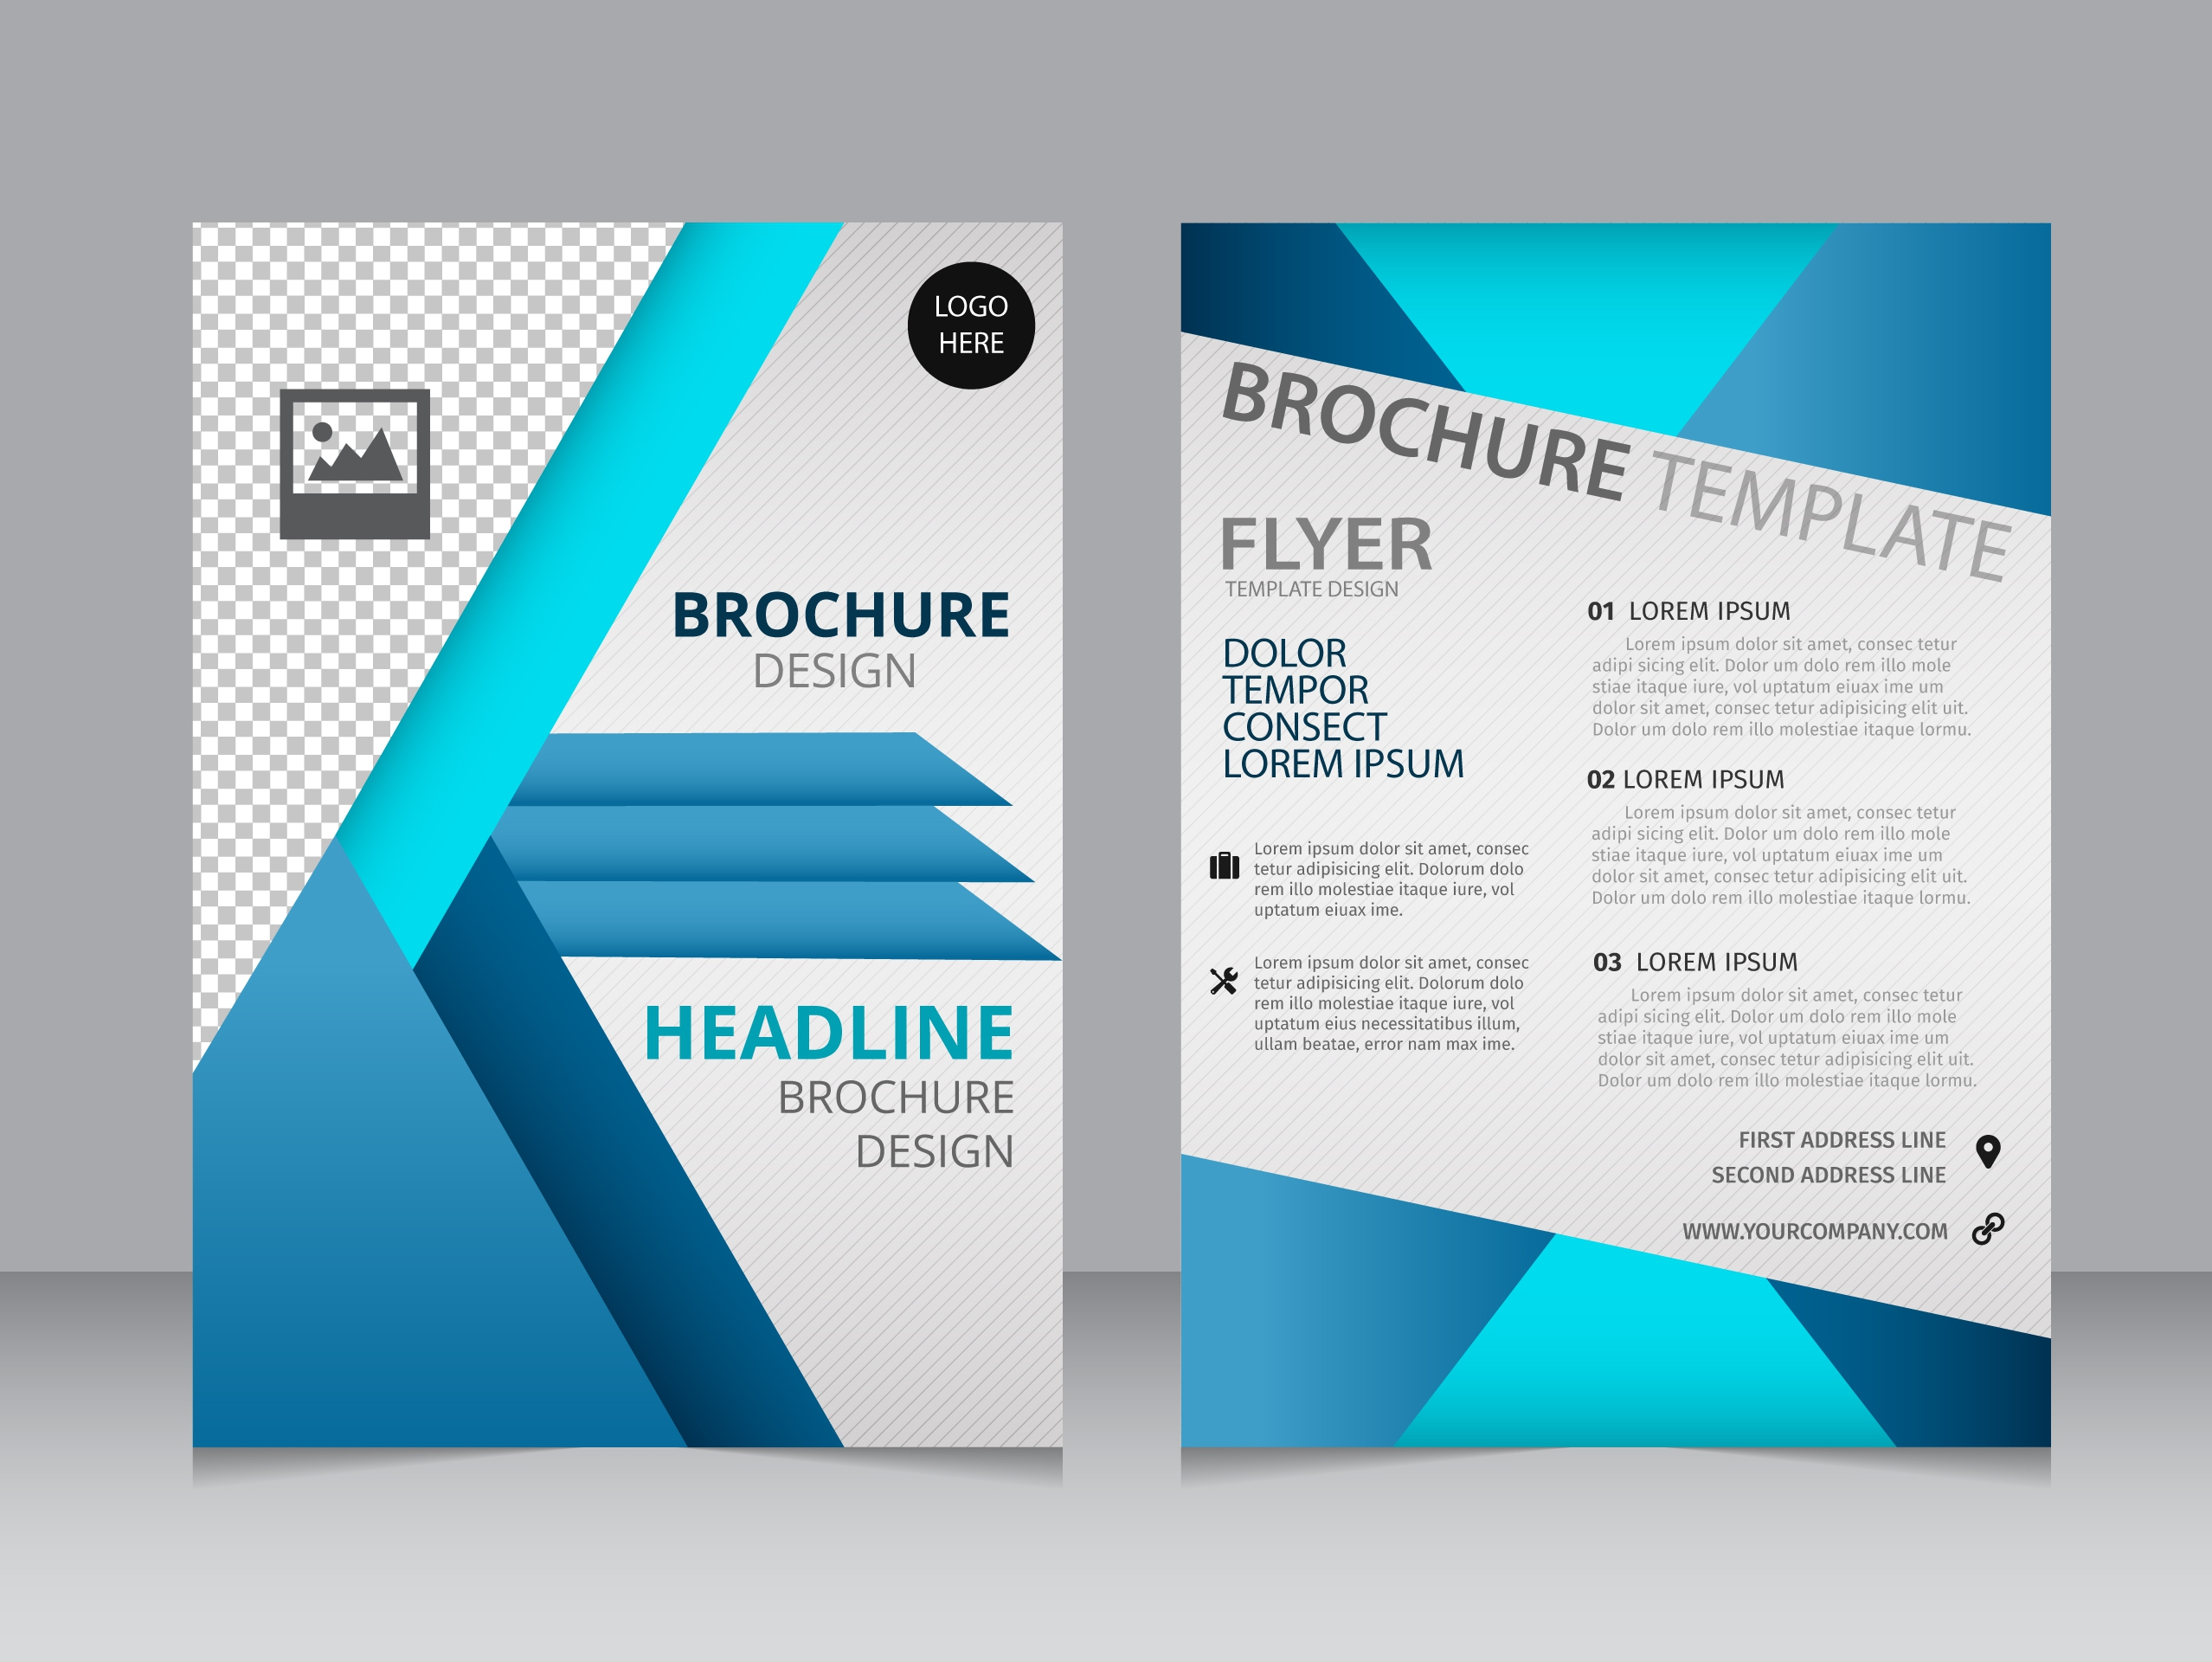 11 Free Sample Travel Brochure Templates - Printable Samples